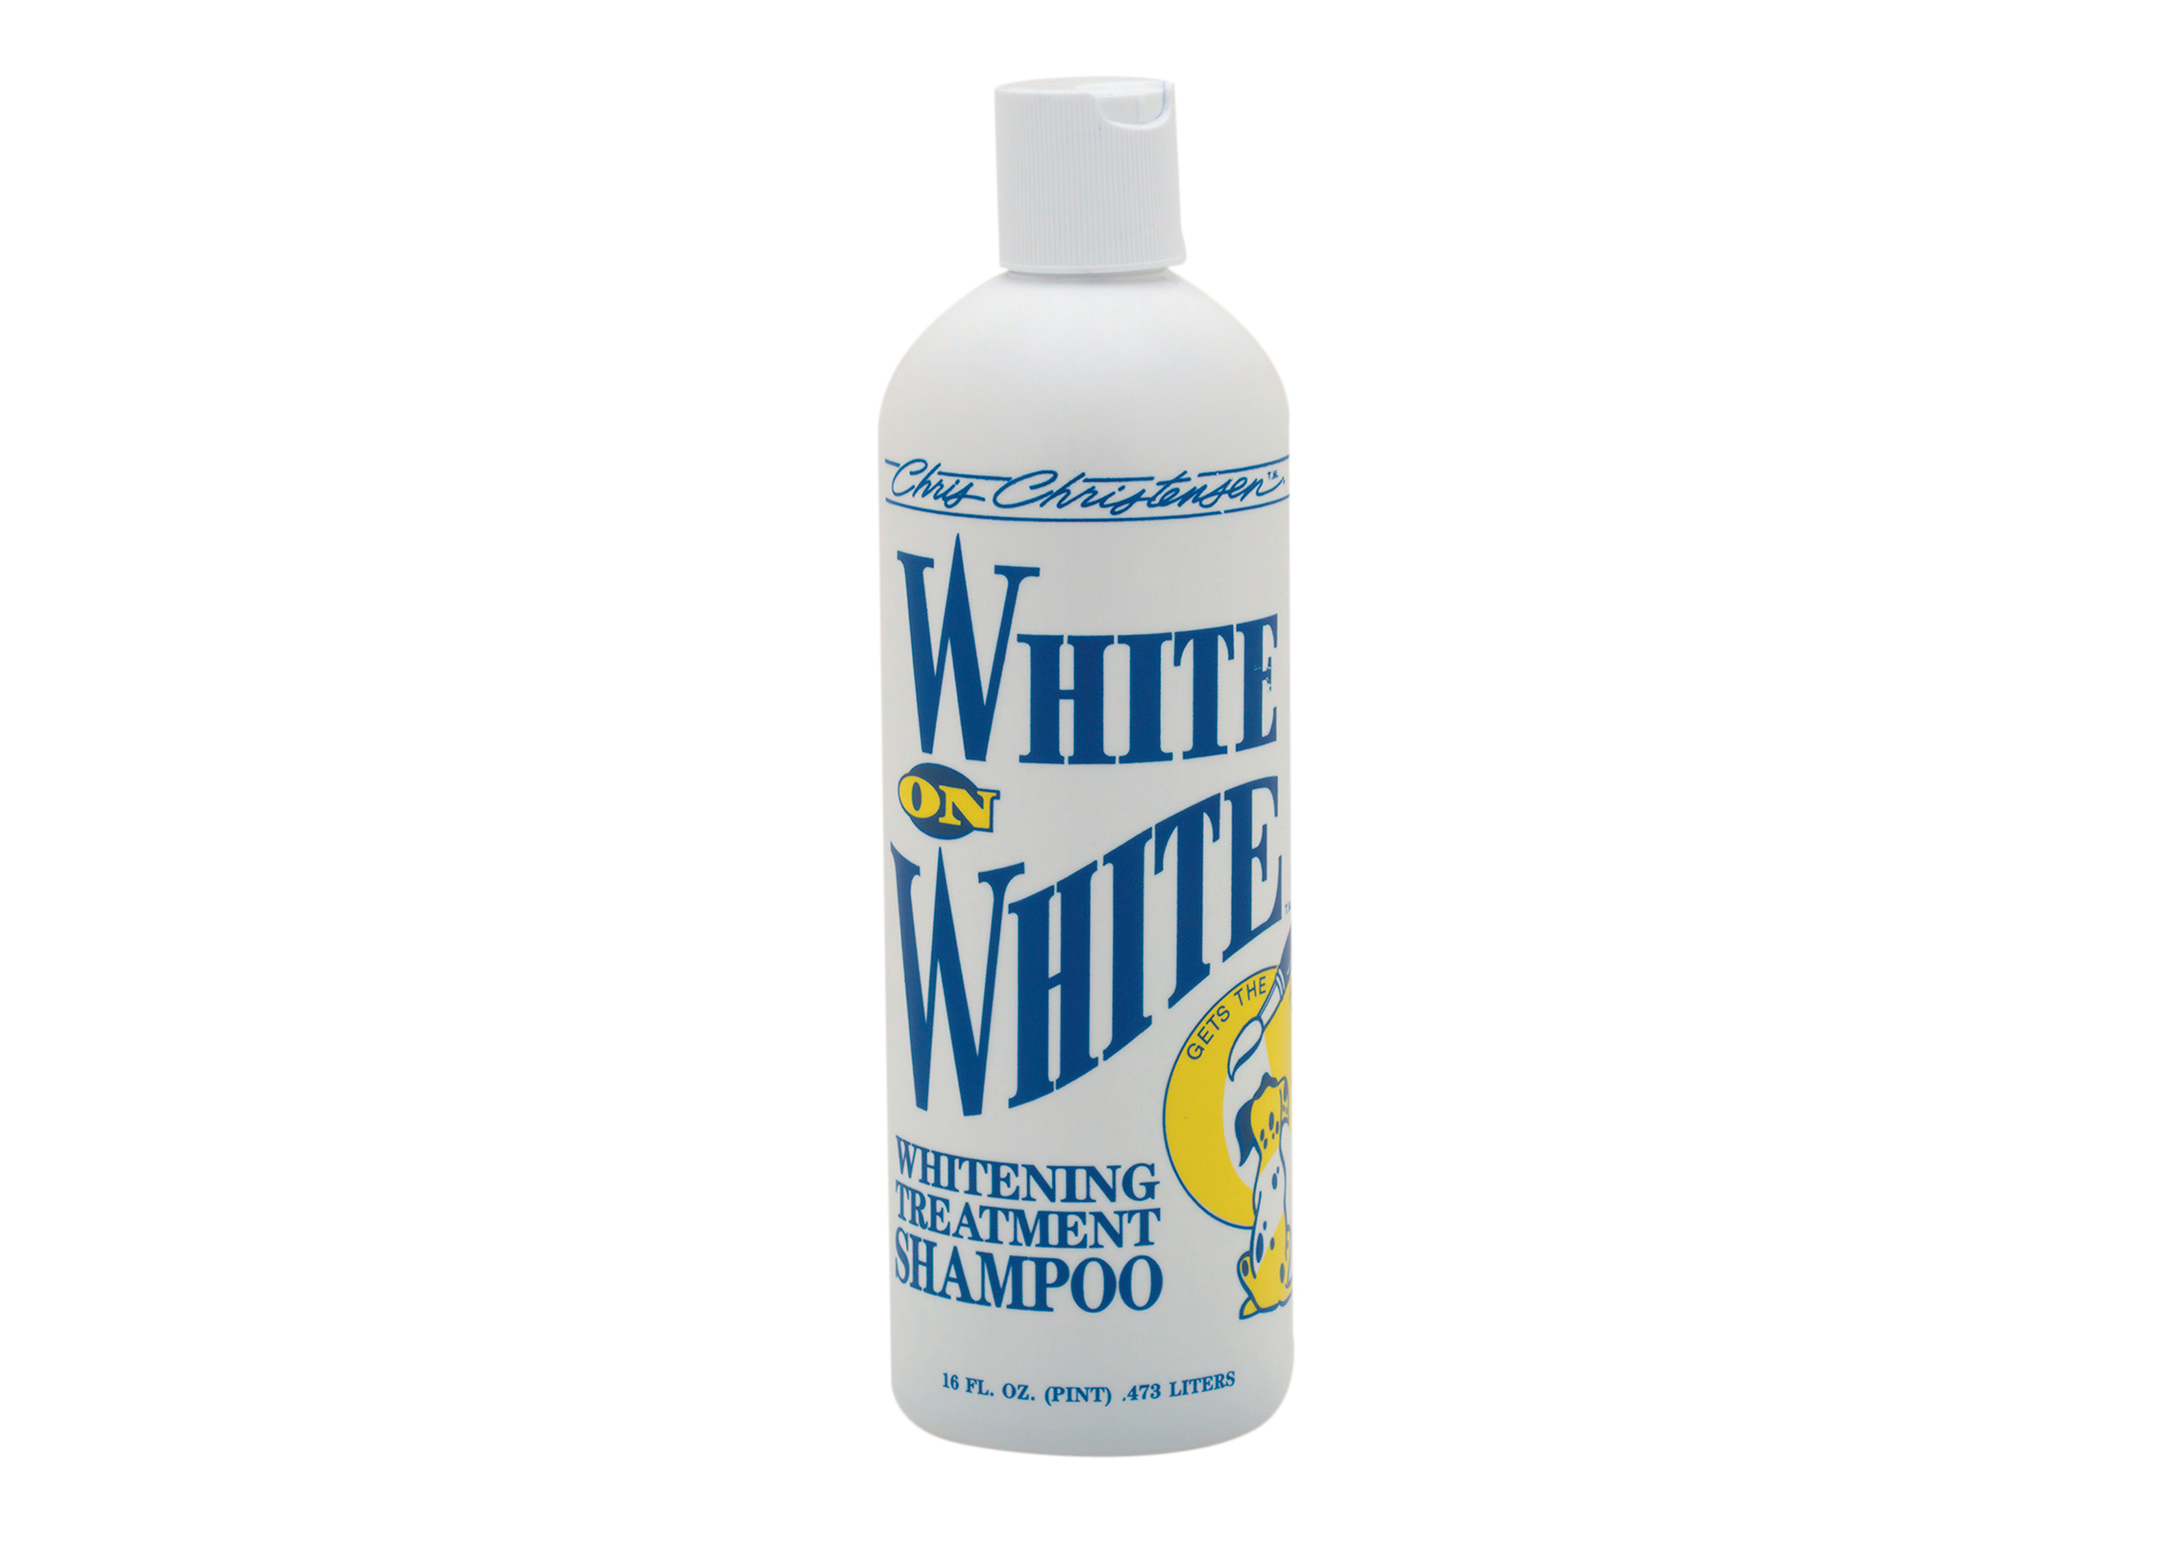 Chris Christensen Systems White on White Shampoo For Dogs, Cats And Horses